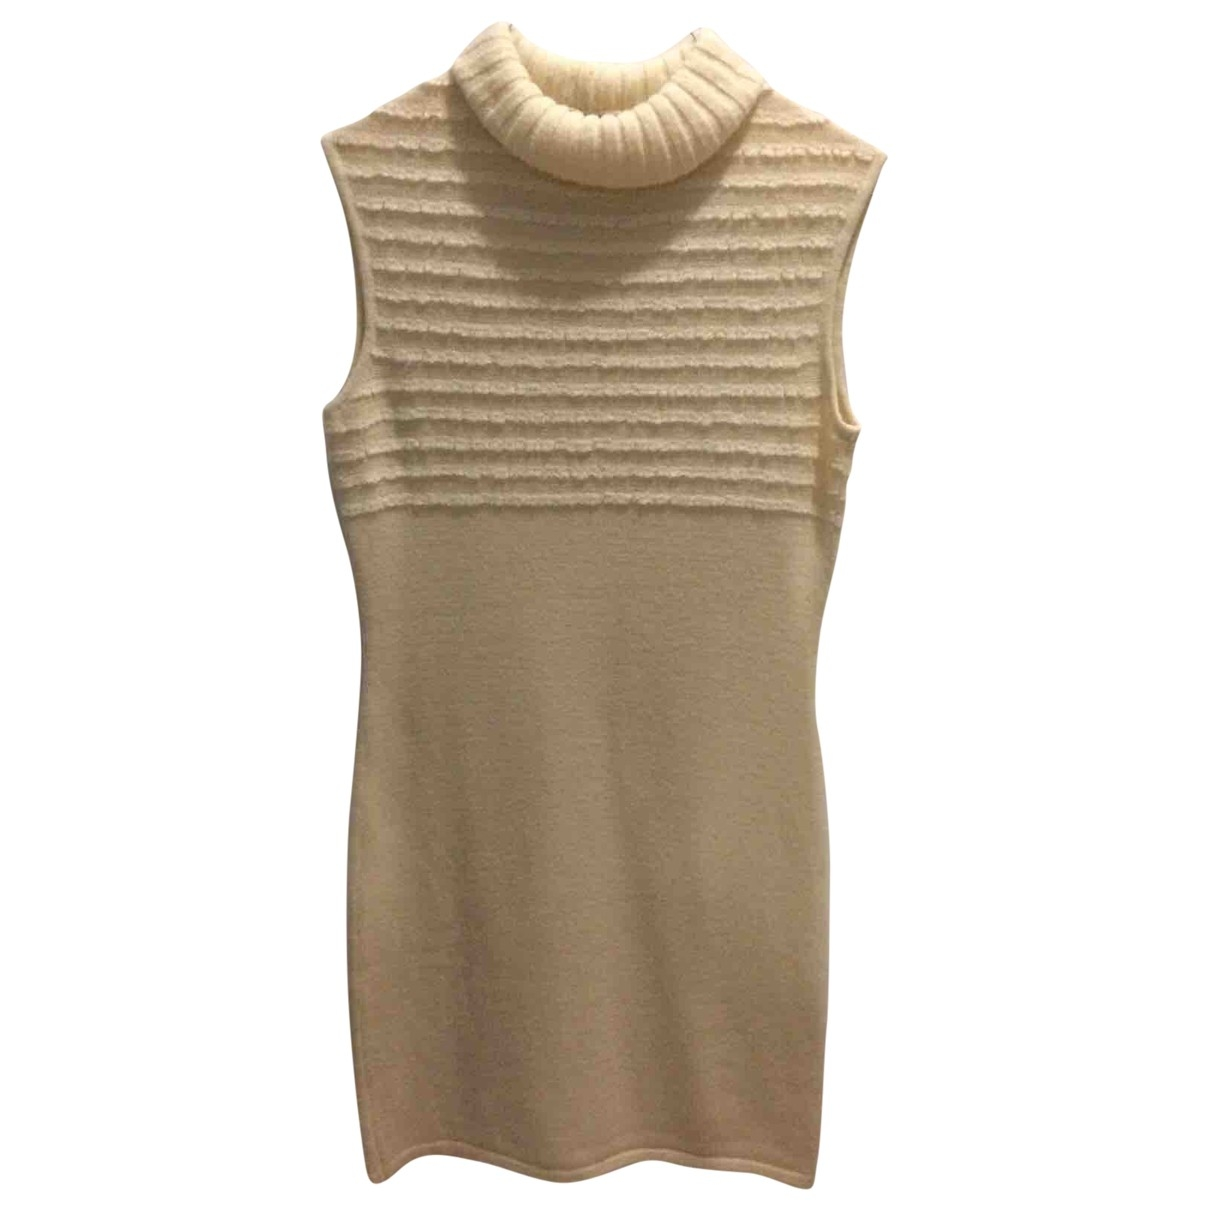 Mila Schön Concept \N Ecru Wool dress for Women 42 IT